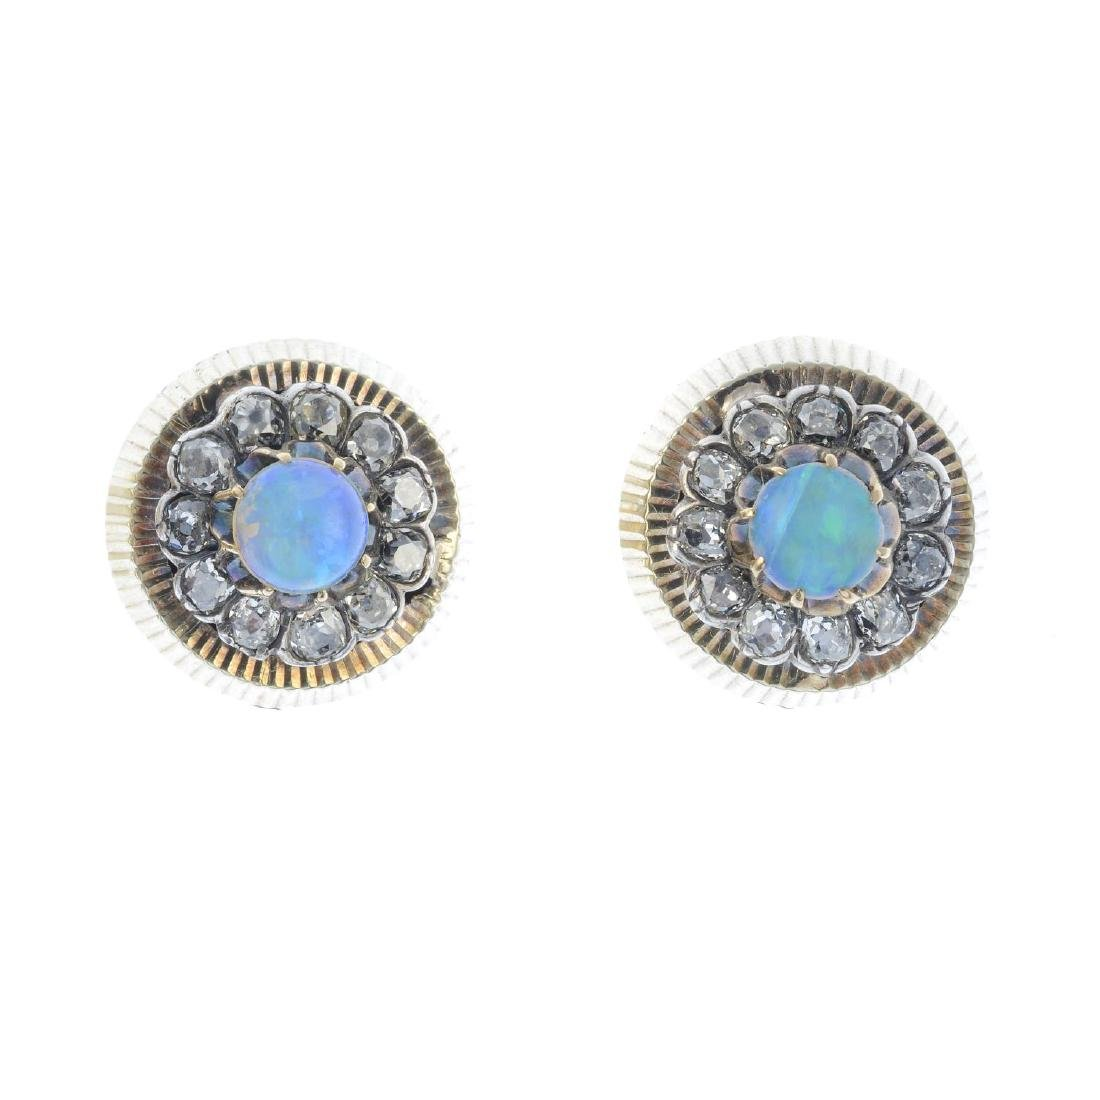 A pair of opal and diamond earrings. Each designed as a